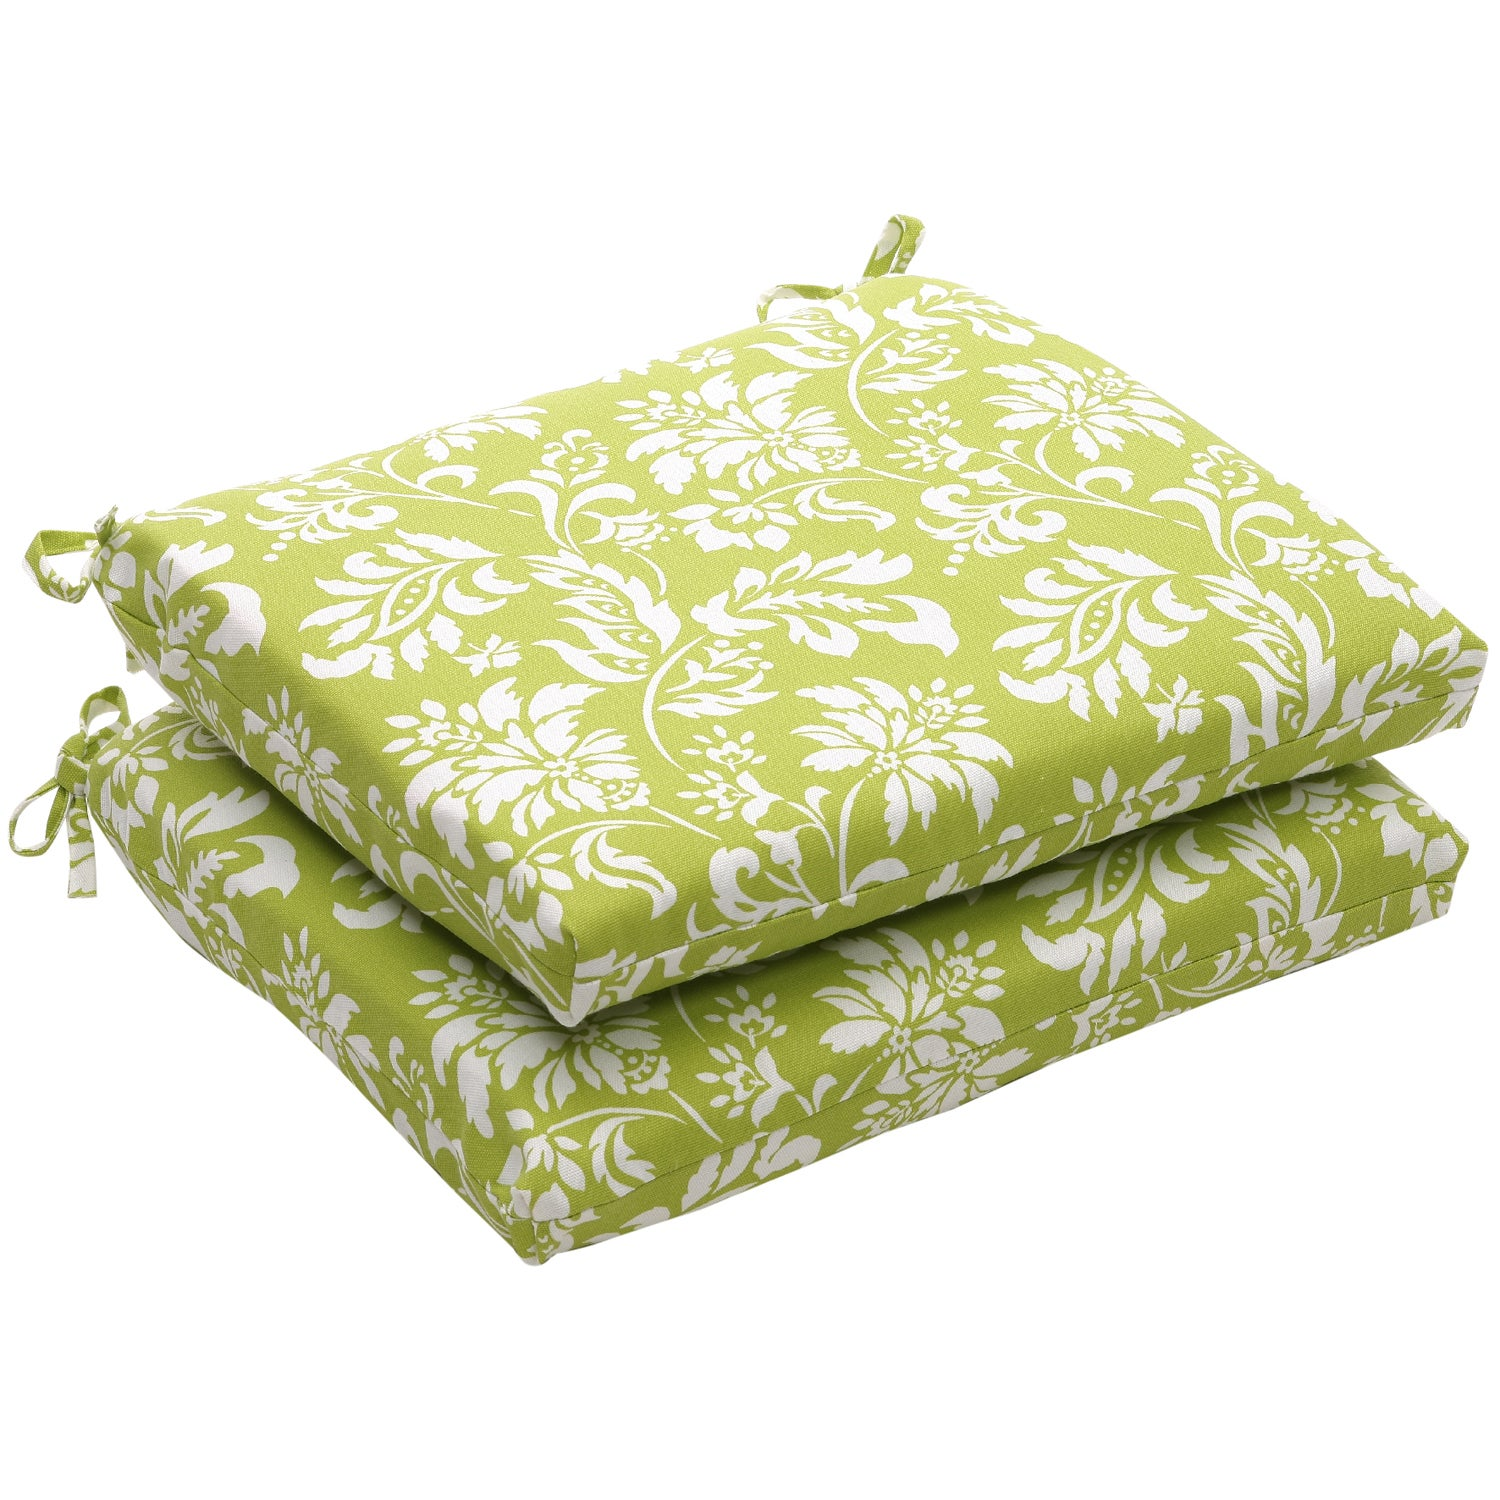 Outdoor Green and White Floral Squared Seat Cushion (Set of 2)